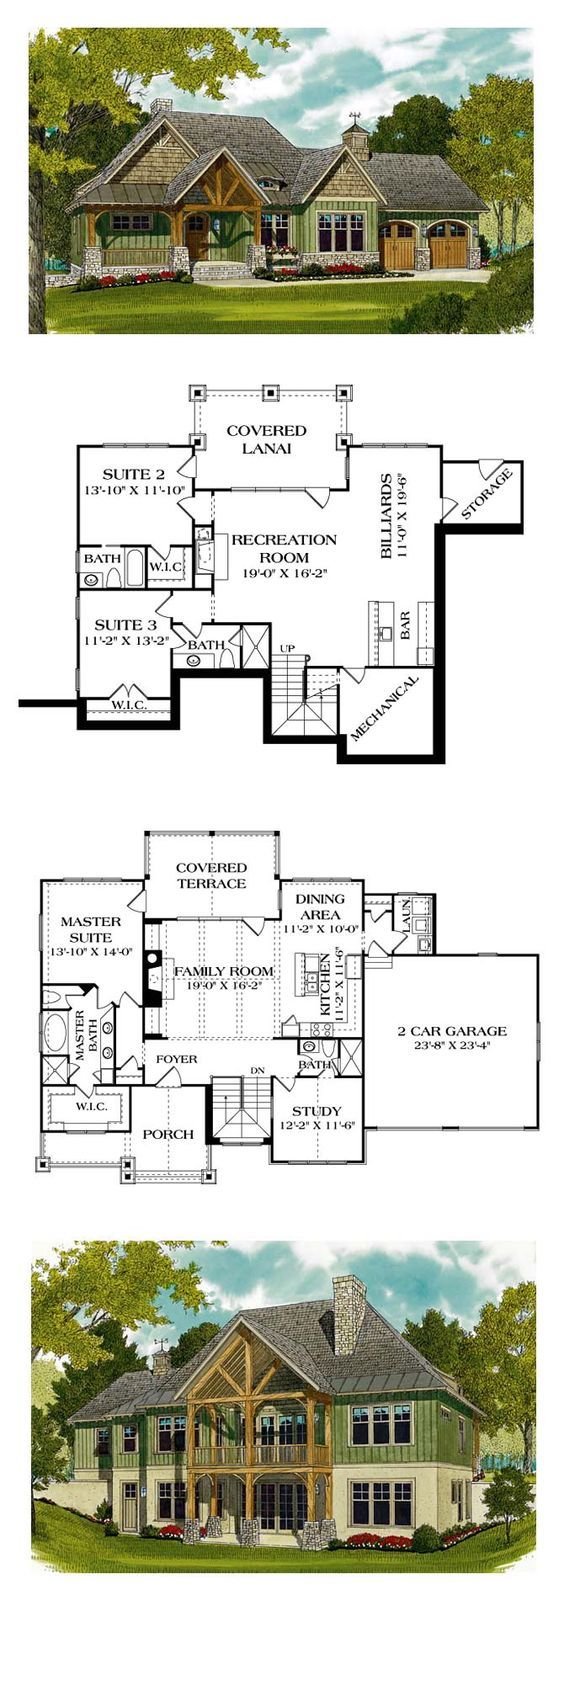 25 best ideas about country house plans on pinterest for Country ranch house plans with basement